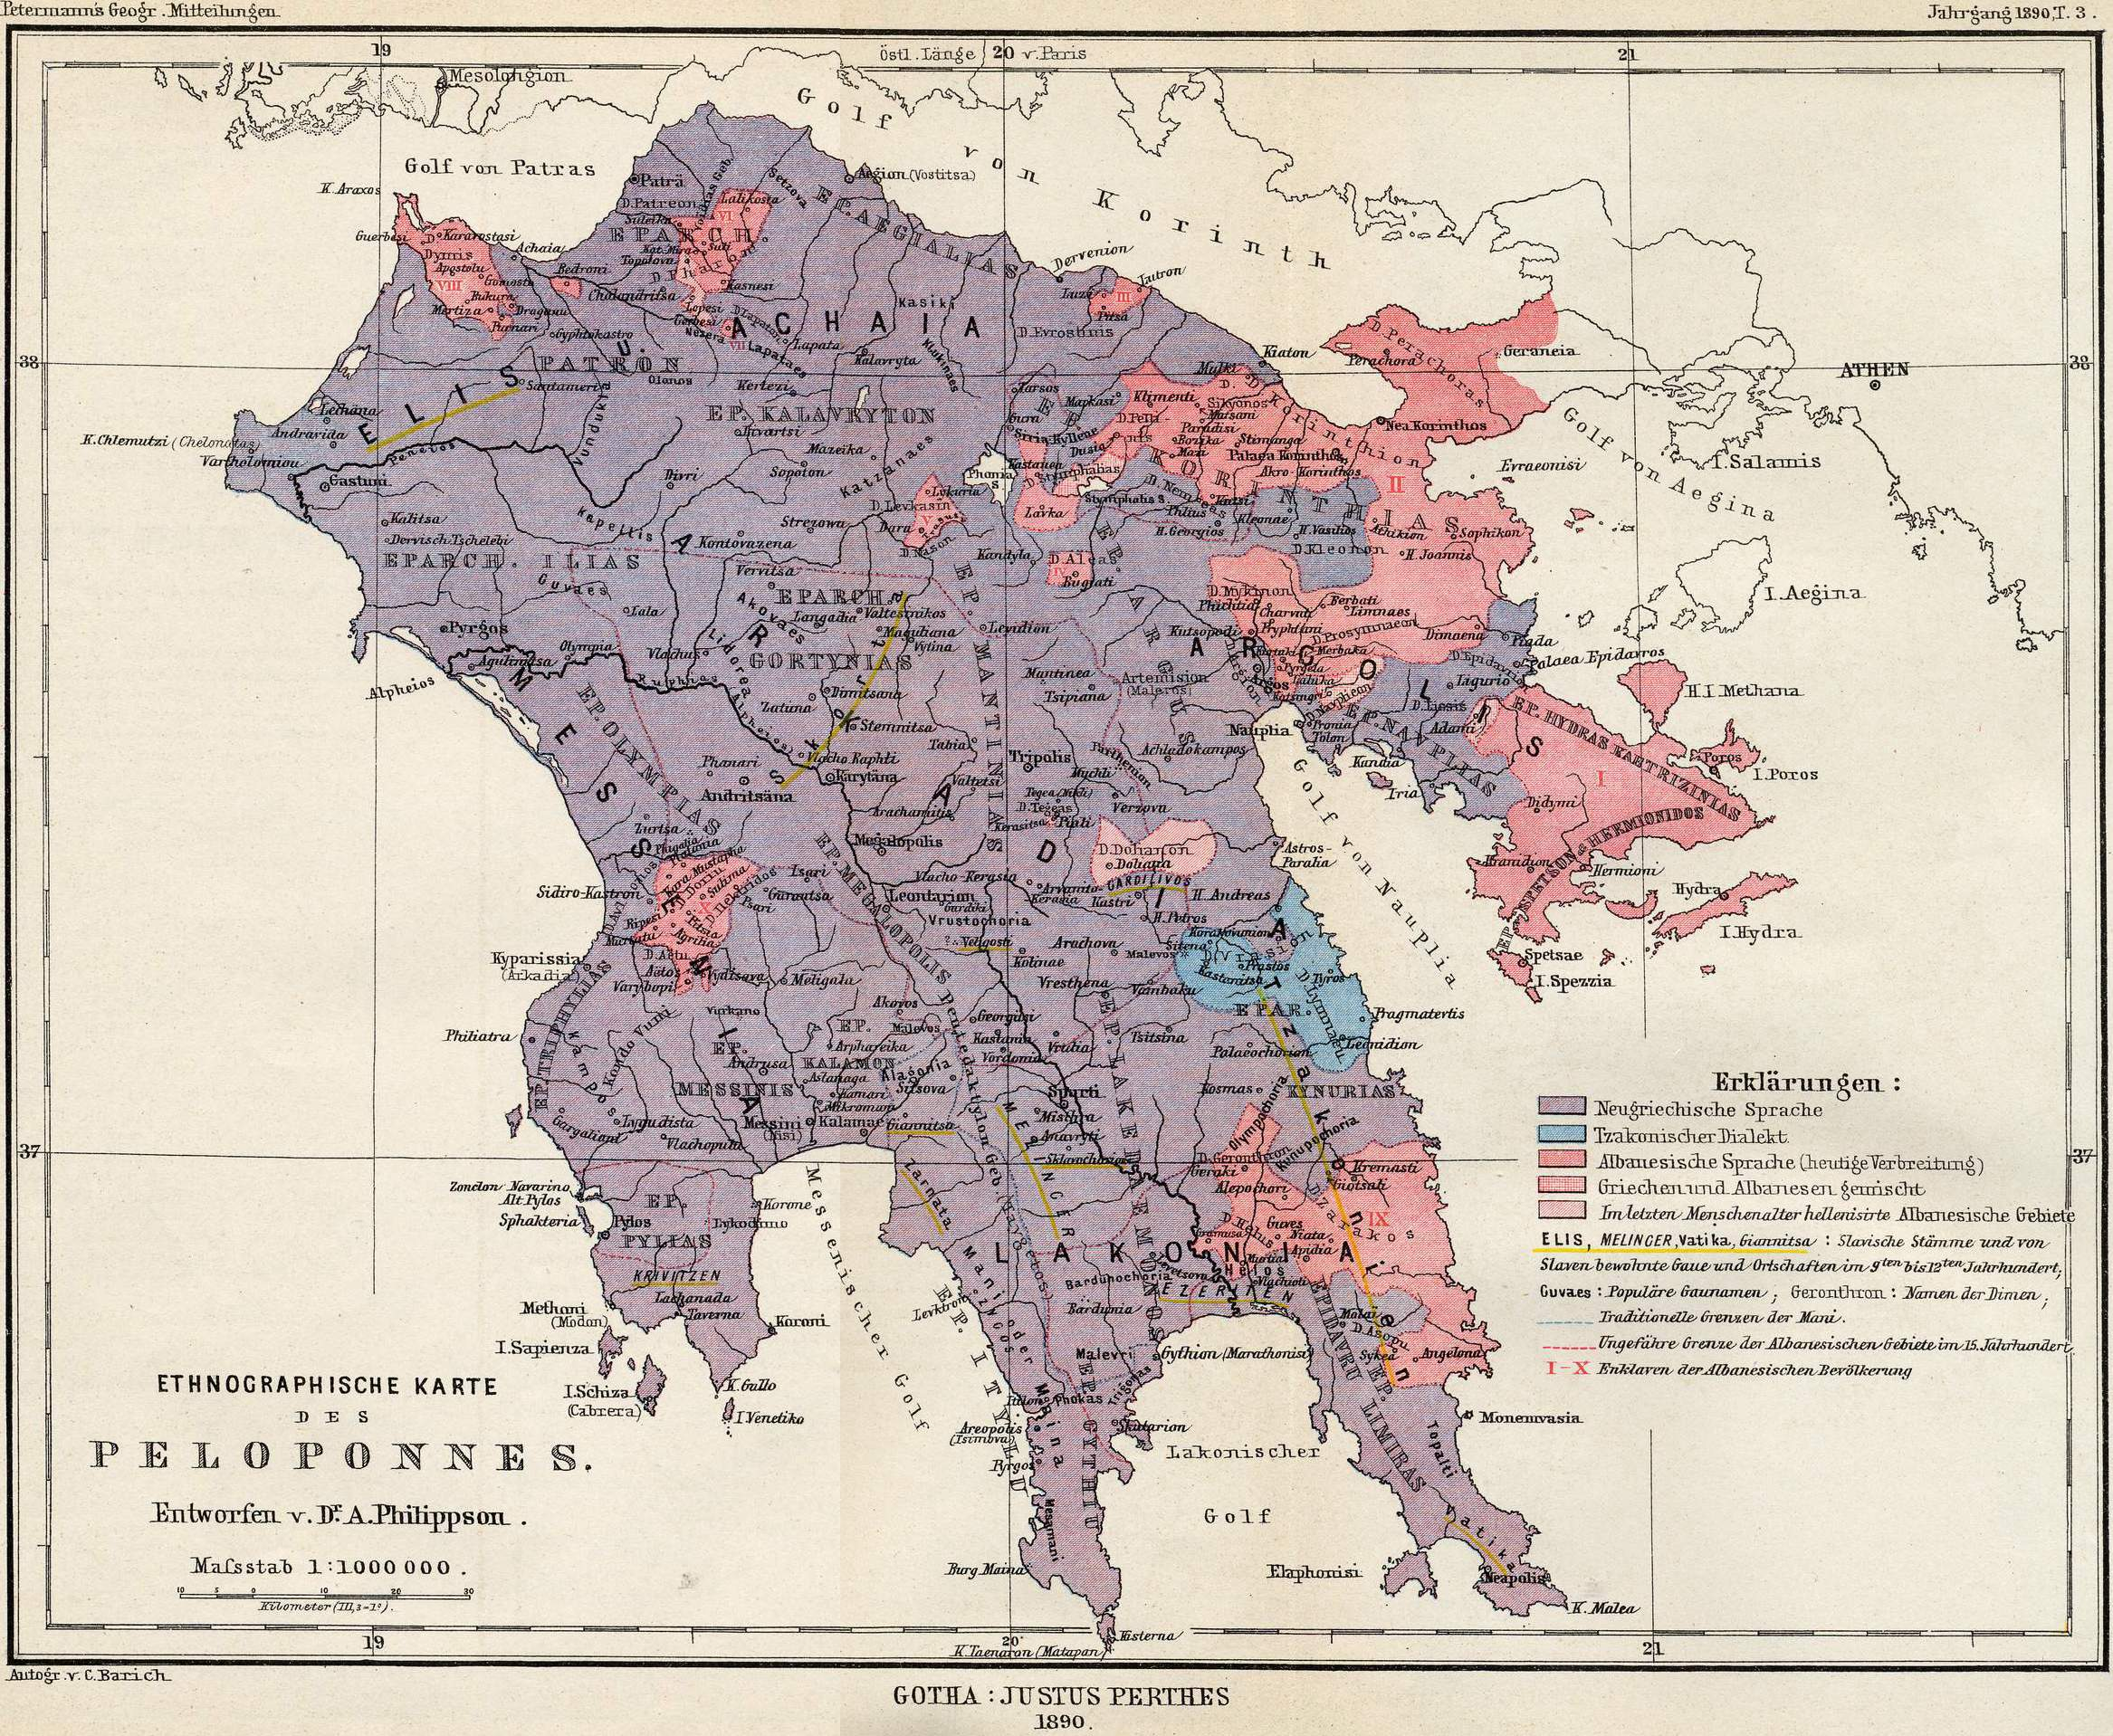 Albanian-speaking and Newgreek-speaking areas, 1890.